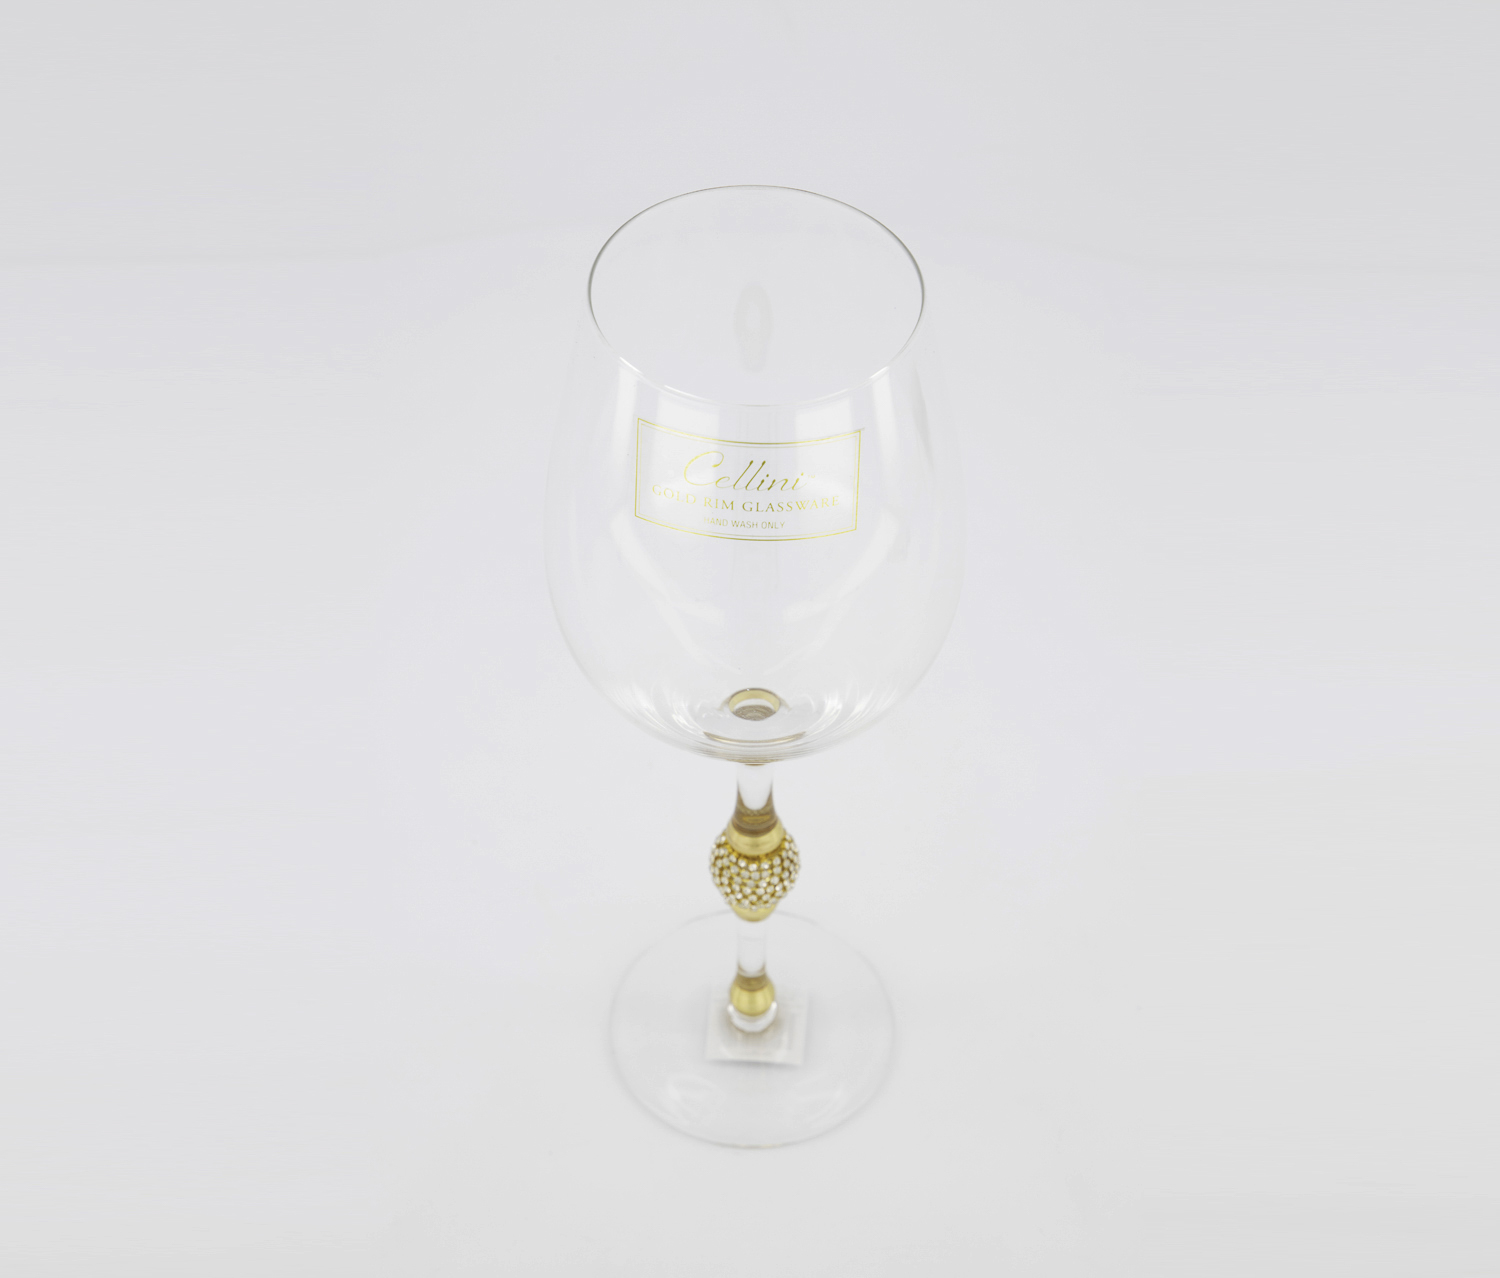 Gold Rim Glassware, Transparent